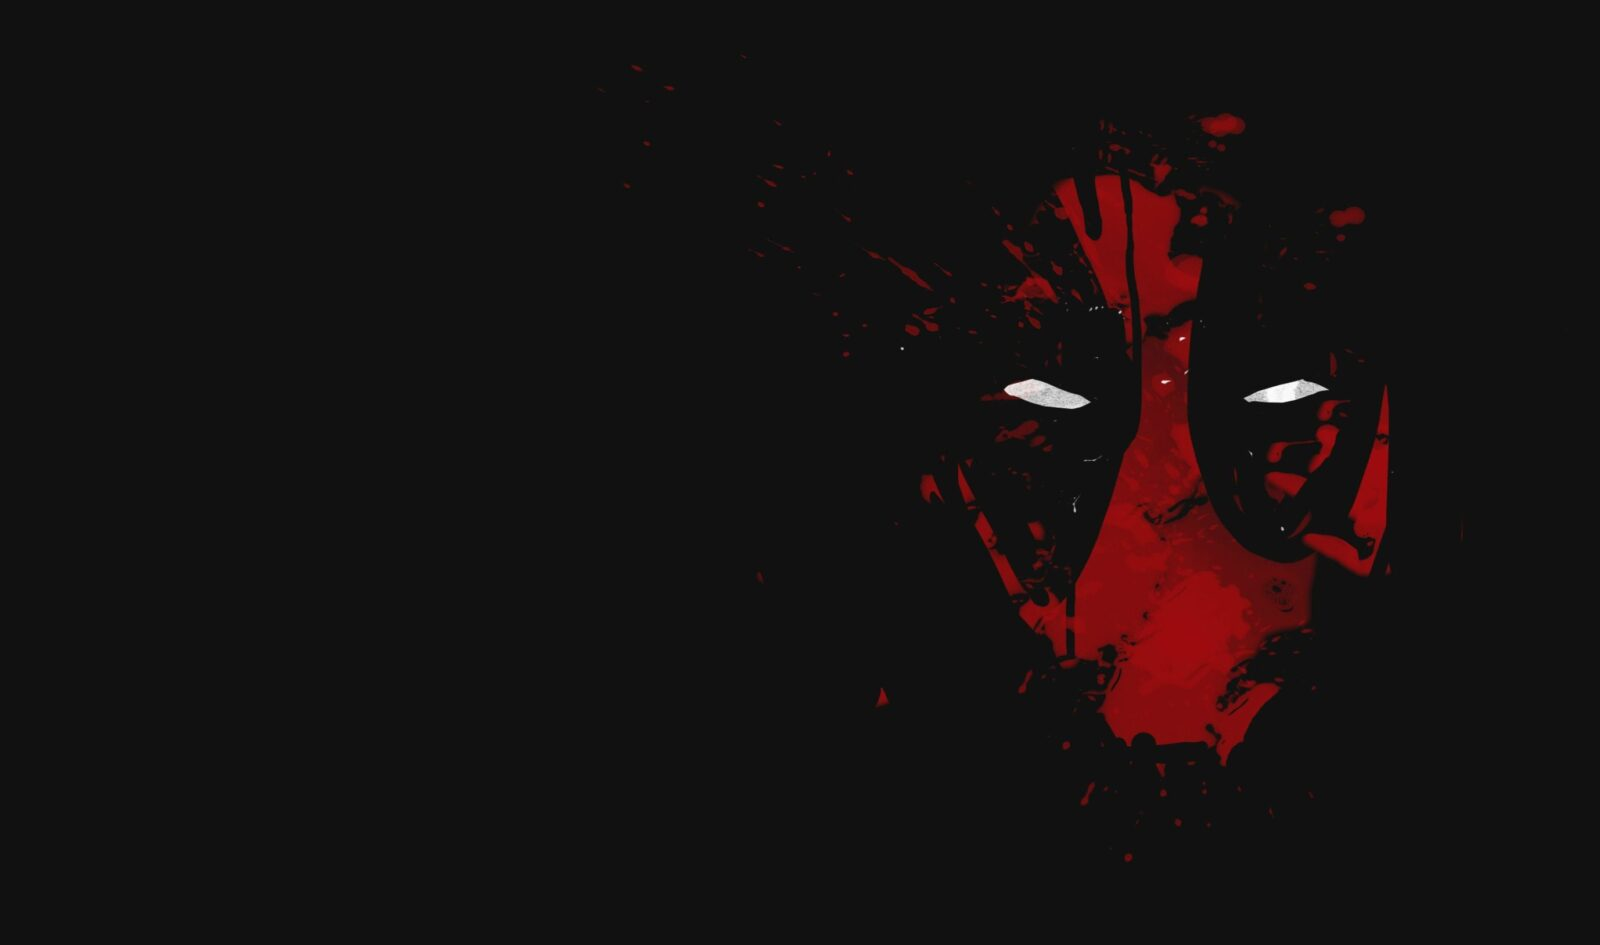 Gas Mask Wallpaper For Iphone 22 Deadpool Hd Wallpapers High Quality Download